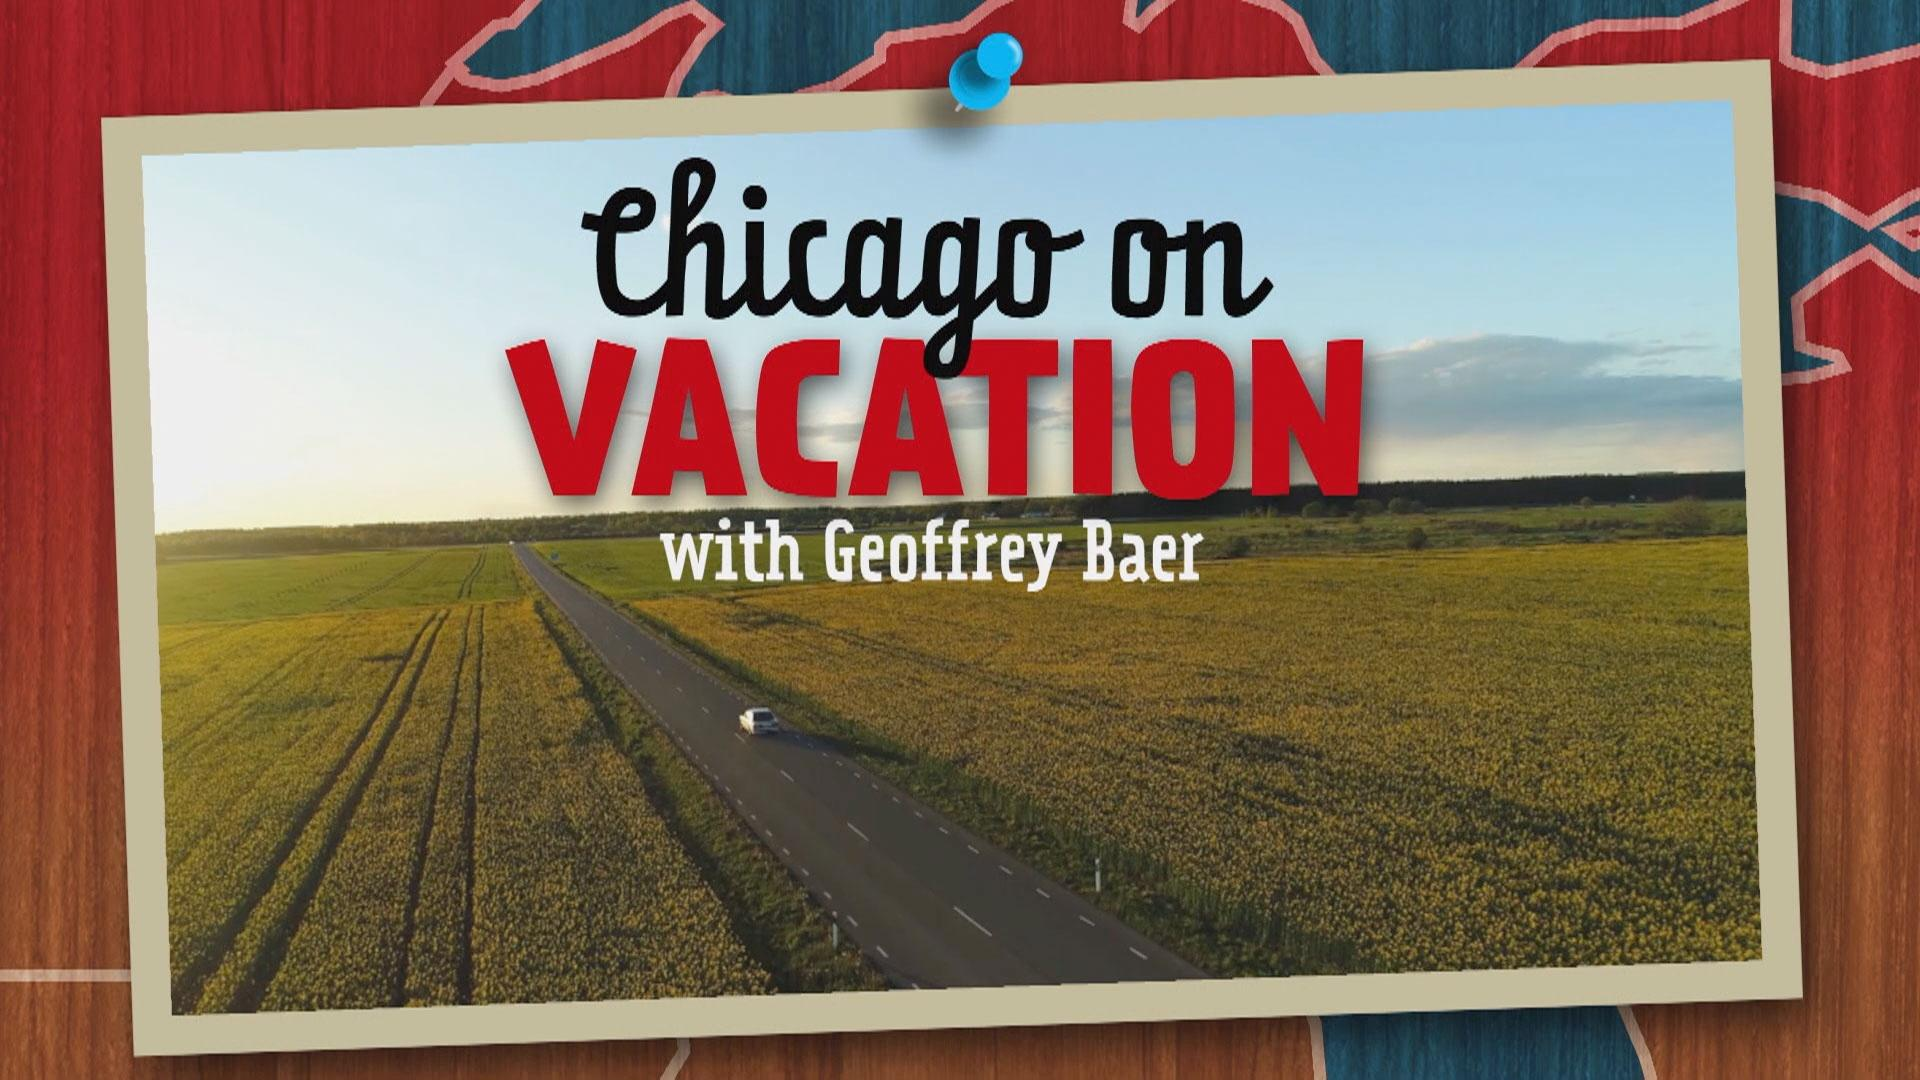 Chicago On Vacation with Geoffrey Baer